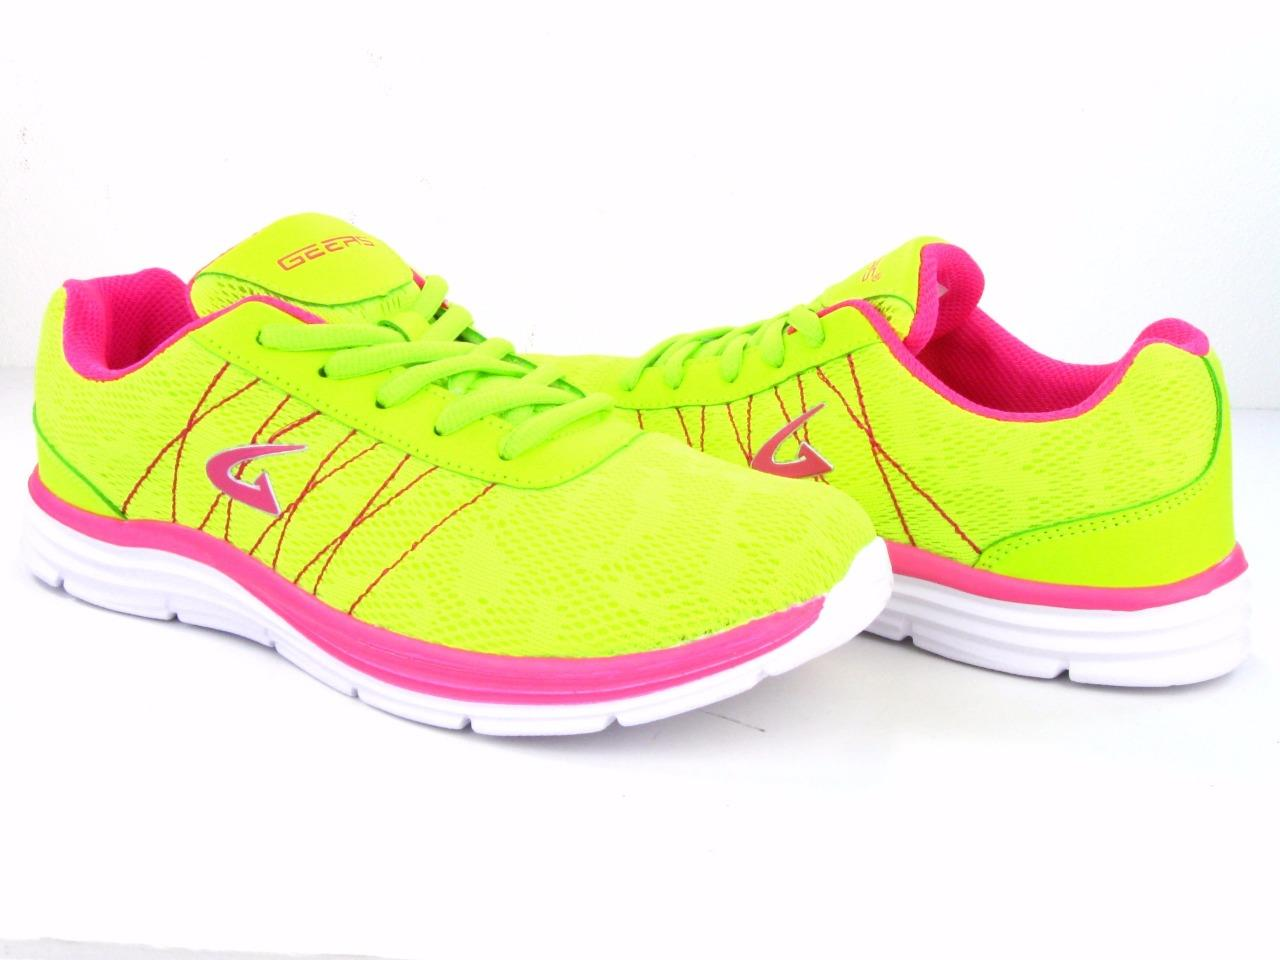 s light weight outsole sneakers athletic tennis